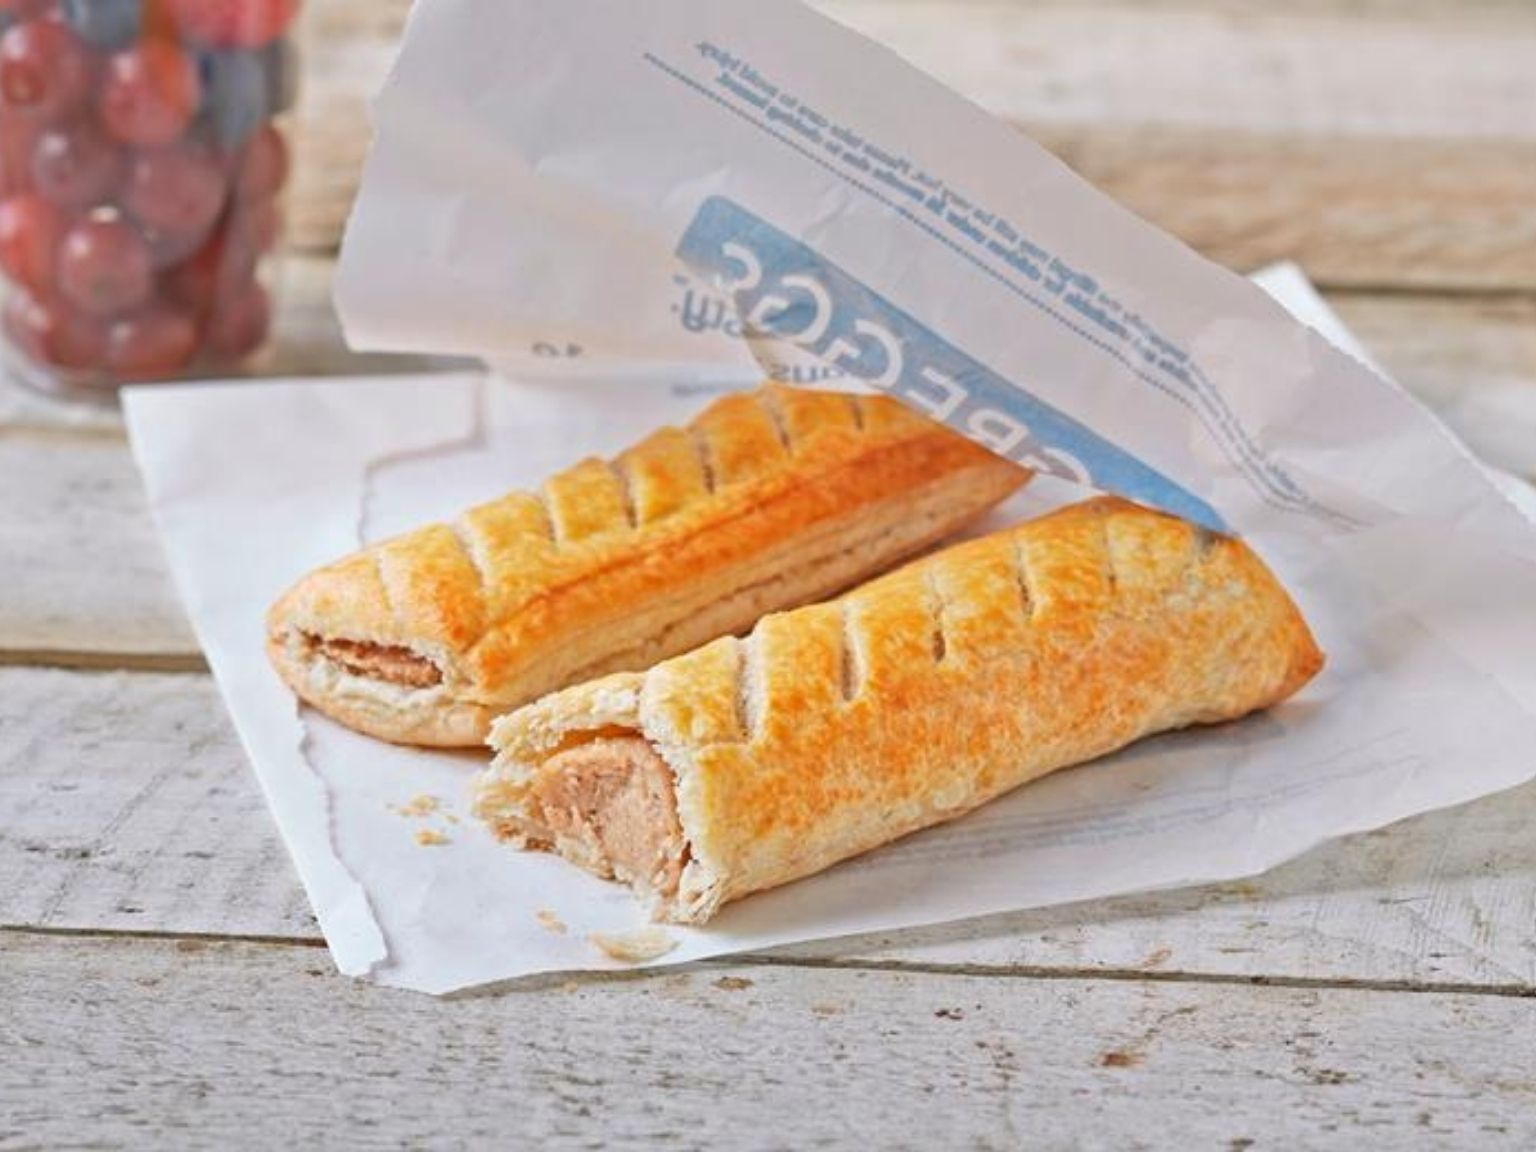 Greggs Key Integrated Services